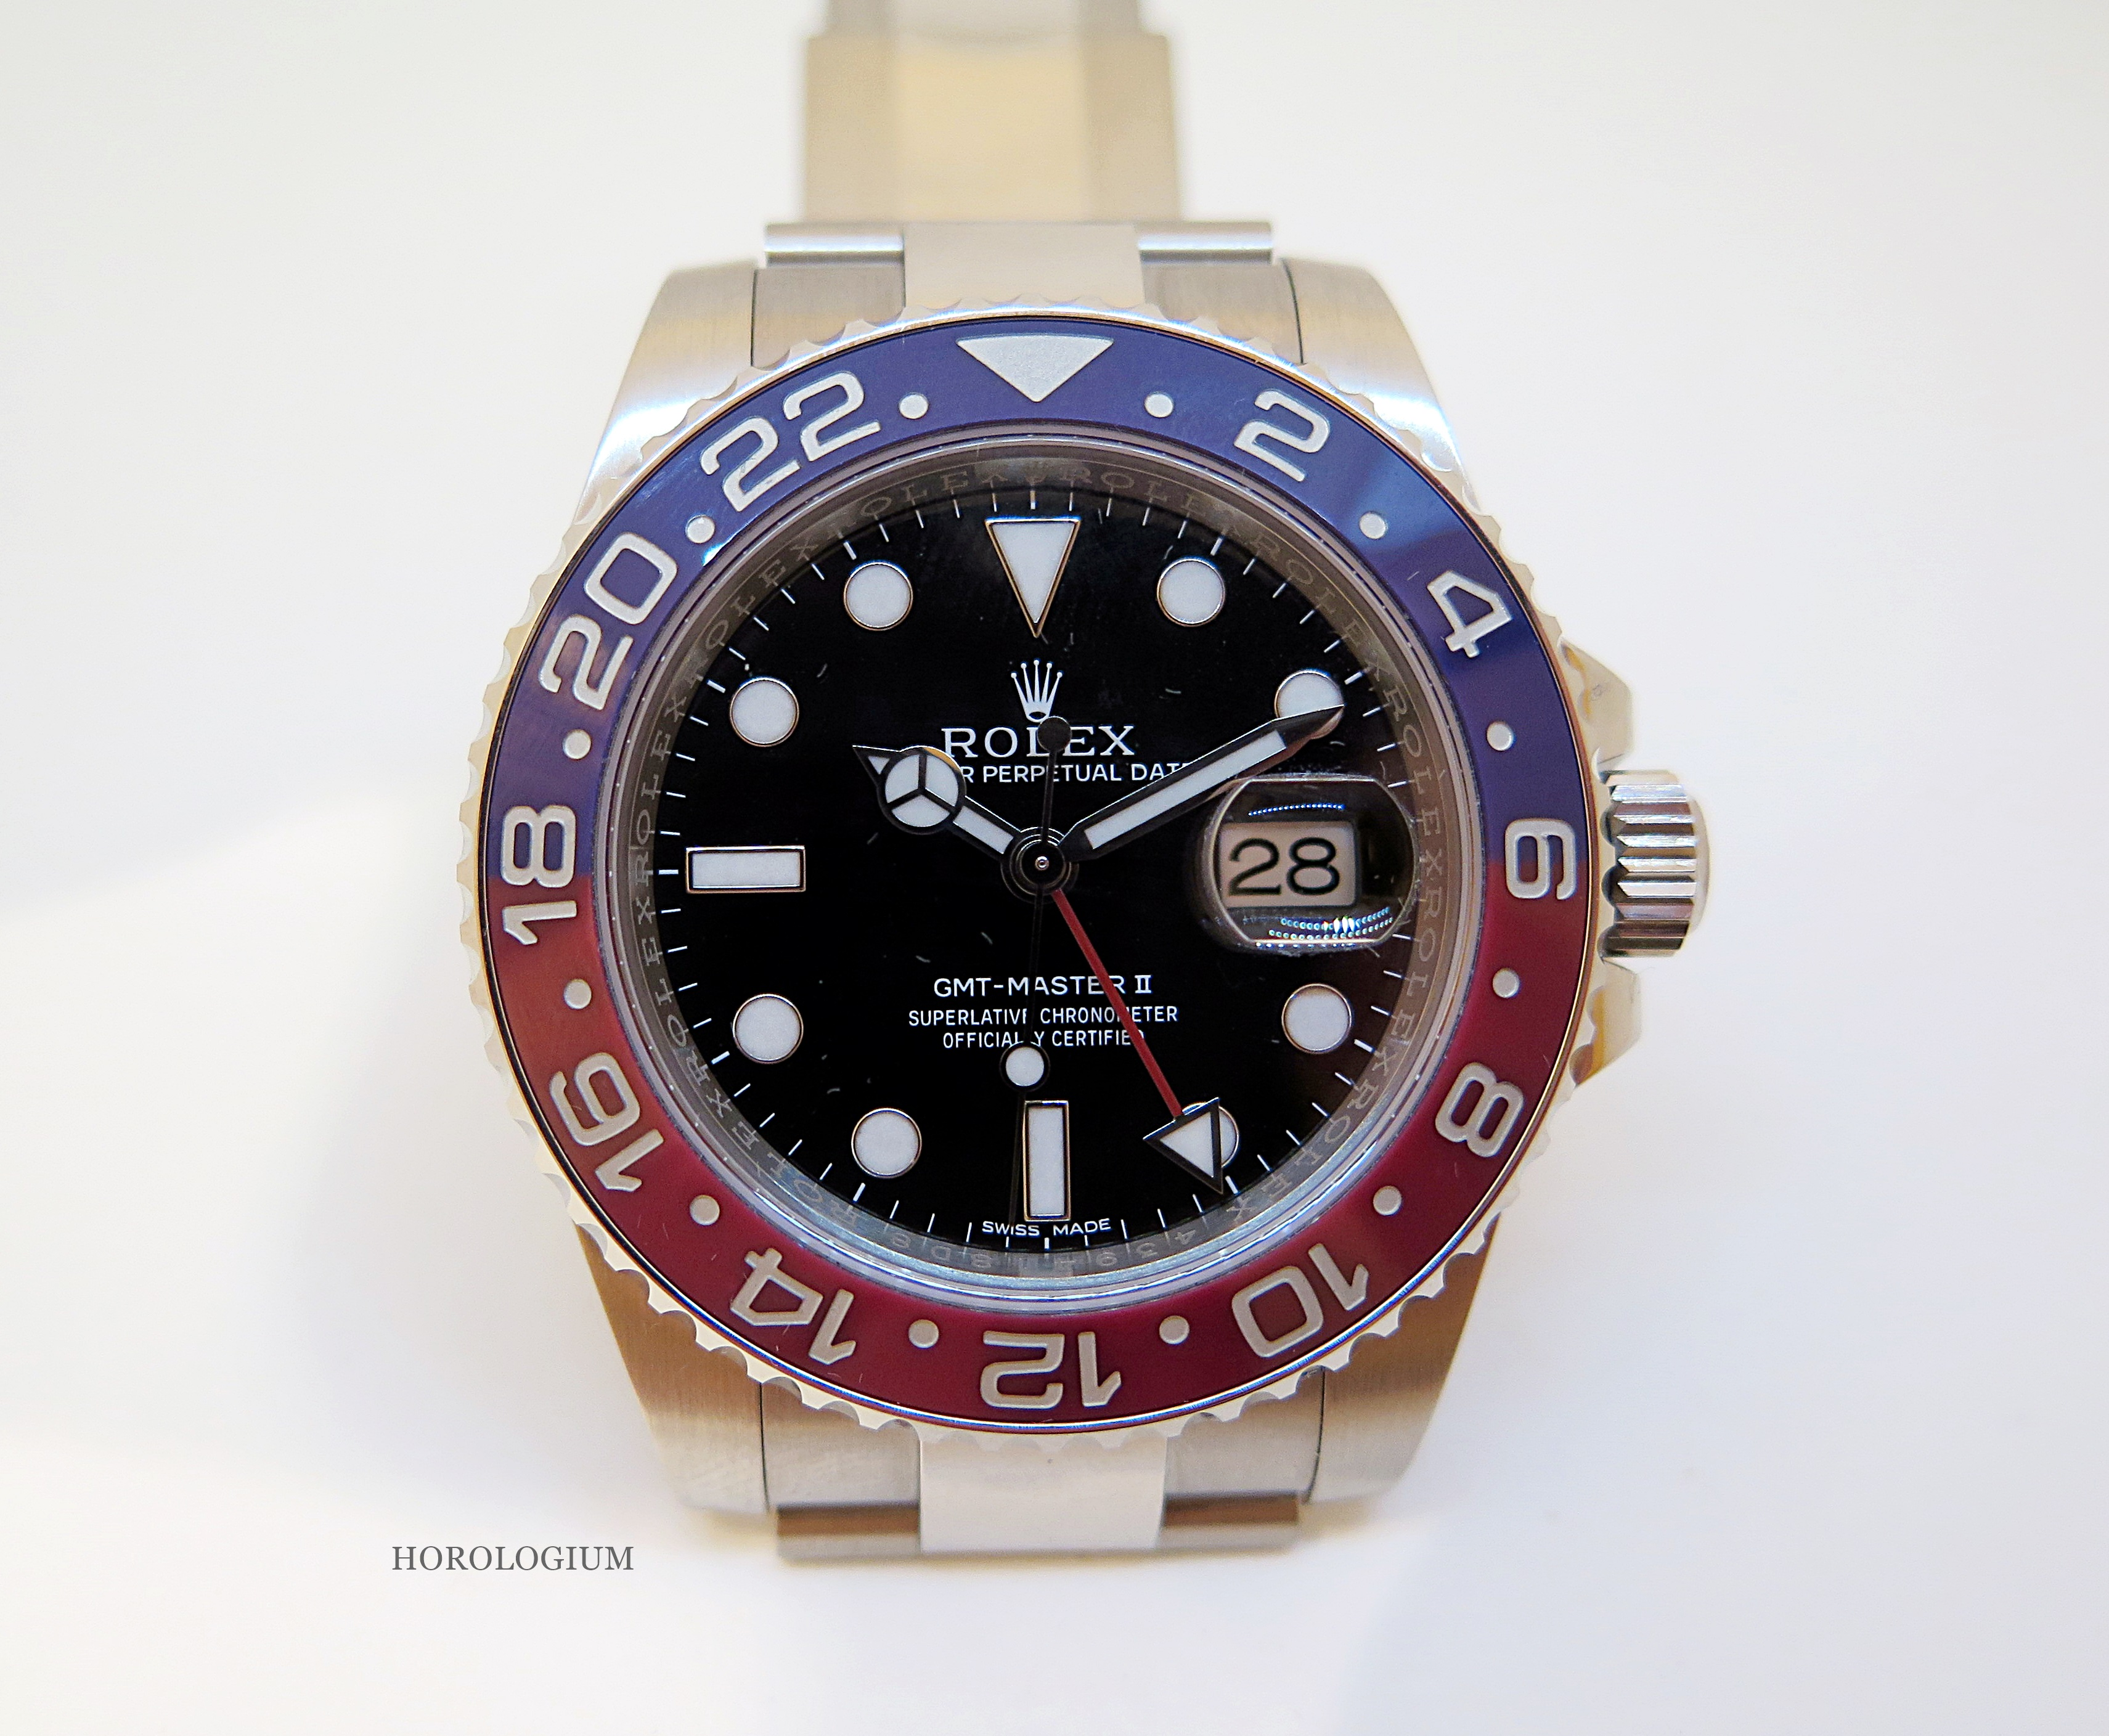 c6b99a09a56 Rolex2014GMTMasterII4. The good news from Rolex at Baselworld 2014 was that  there was a Pepsi bezel for the 2014 GMT-Master II.